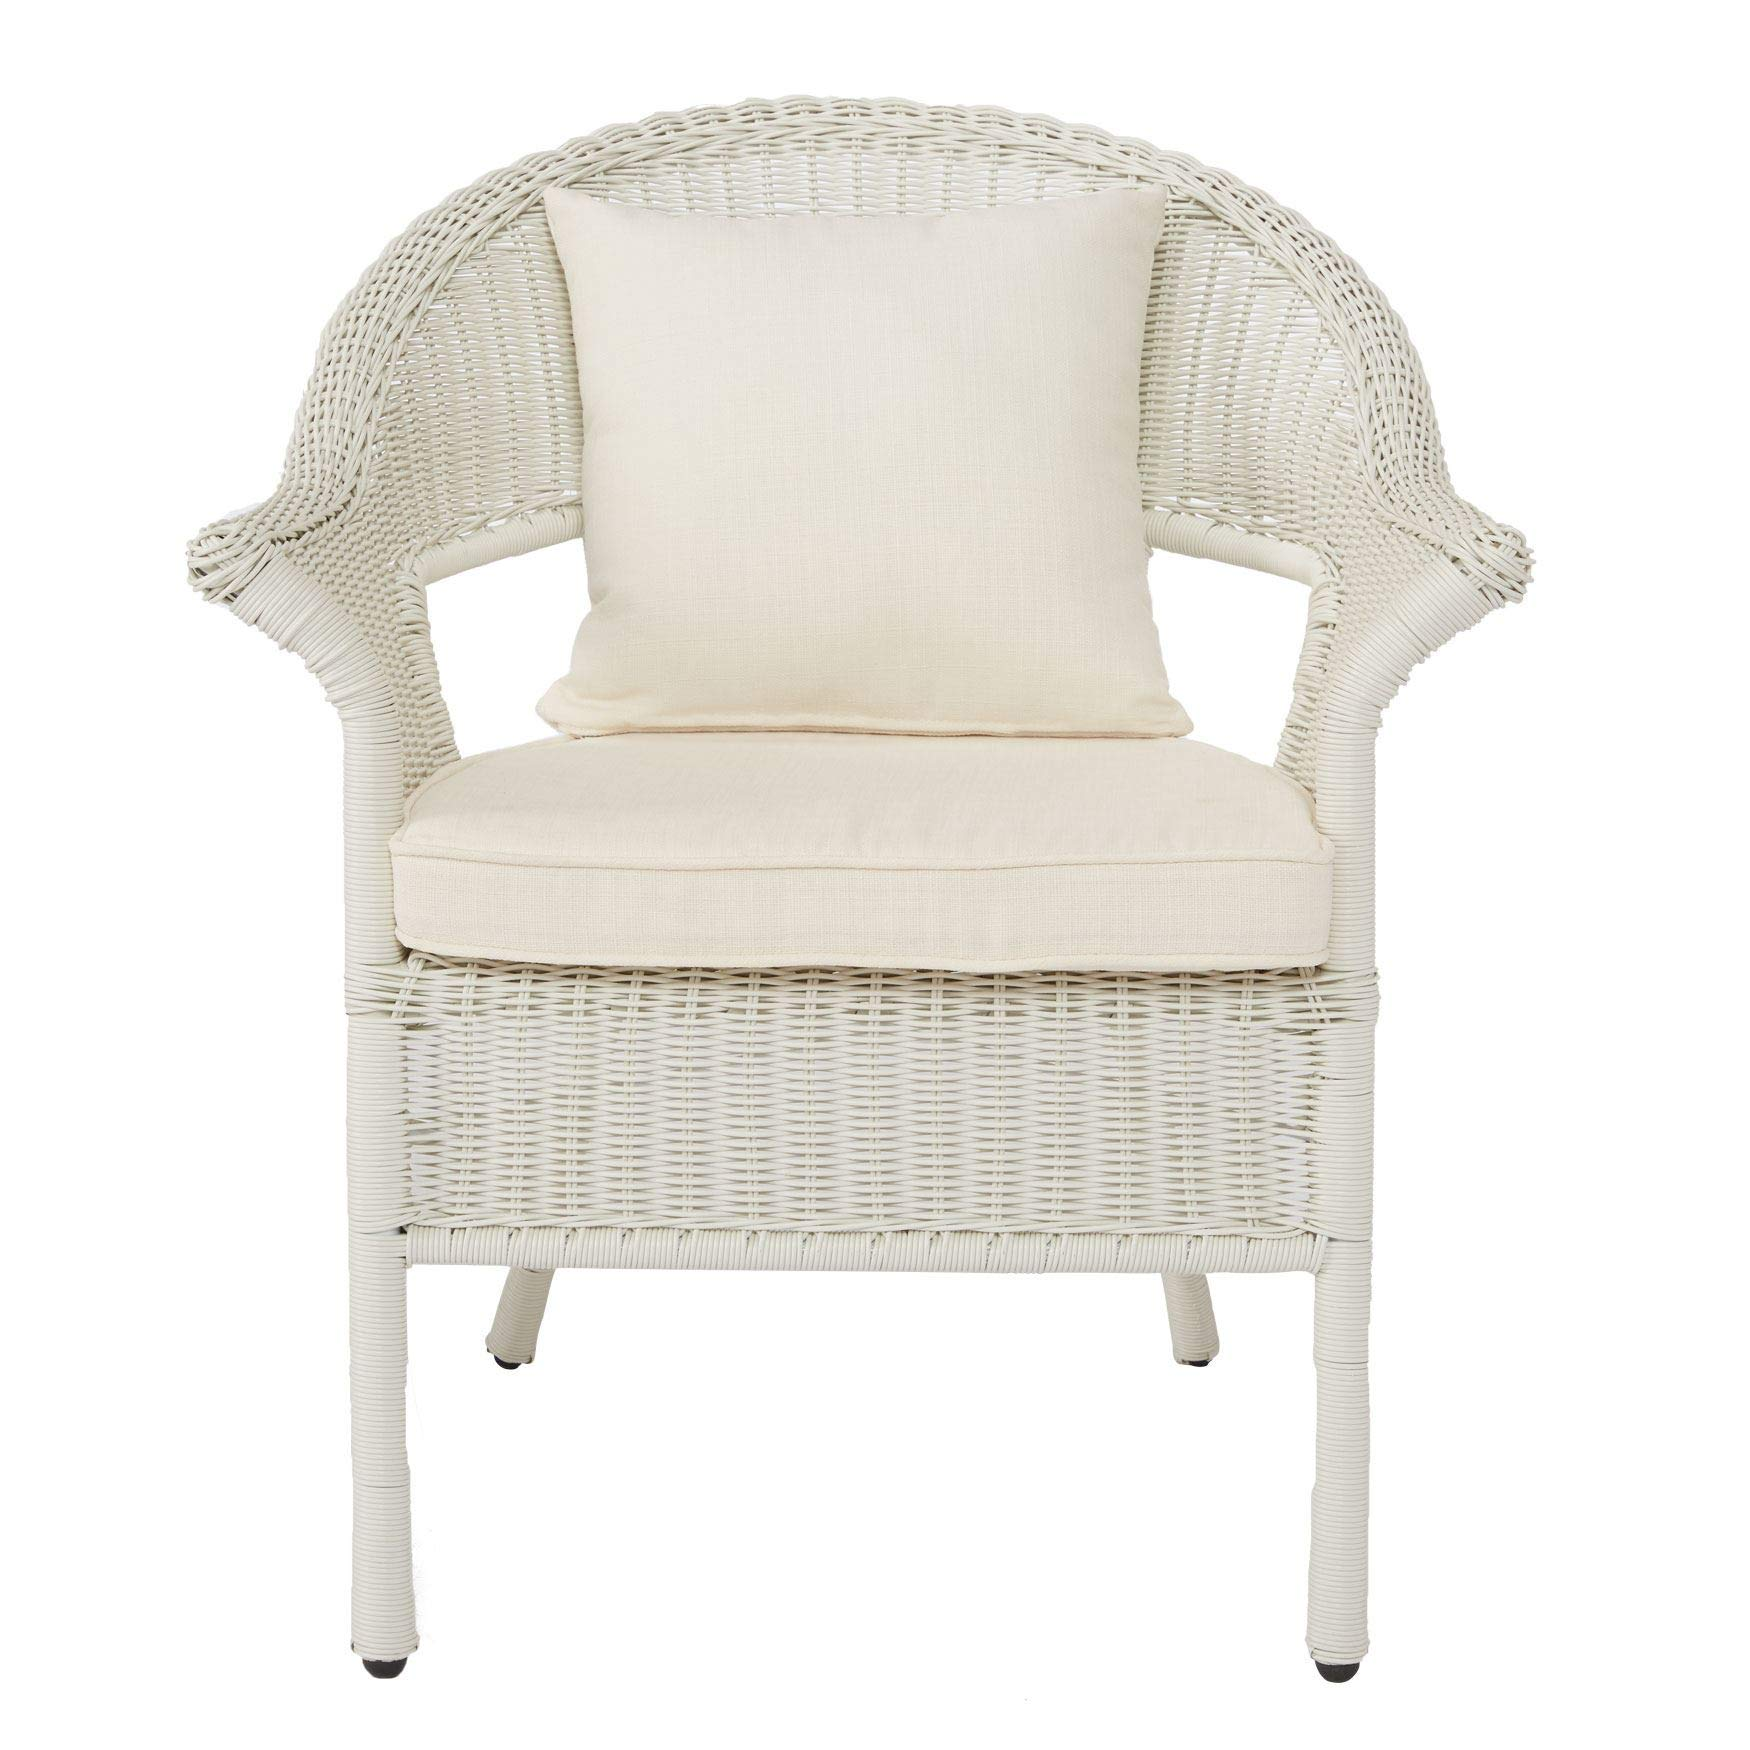 BrylaneHome Roma All-Weather Wicker Stacking Chair - White